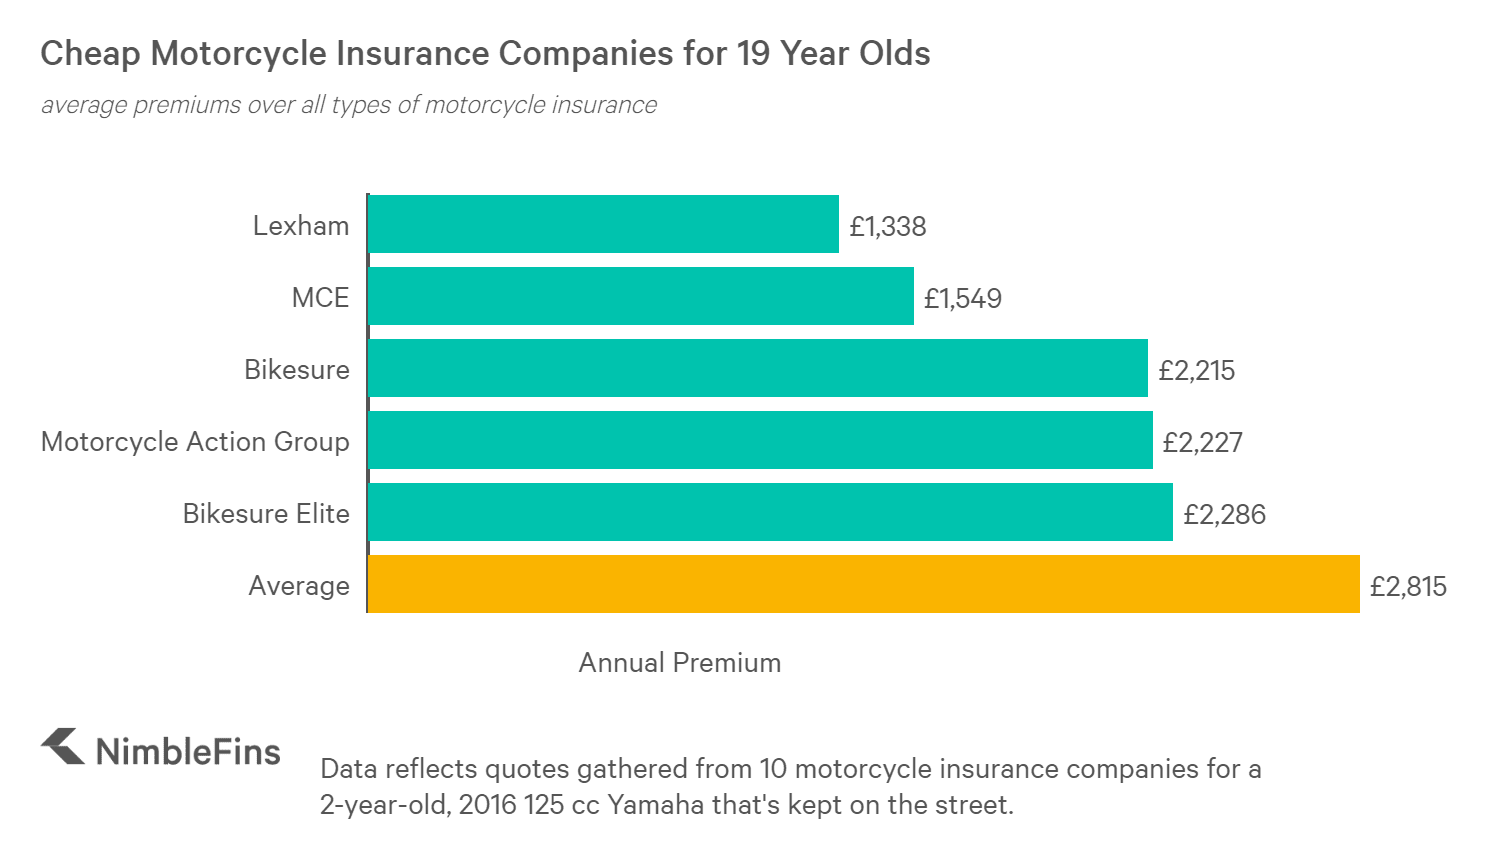 chart showing the cheapest motorcycle insurance companies for a 19 year old